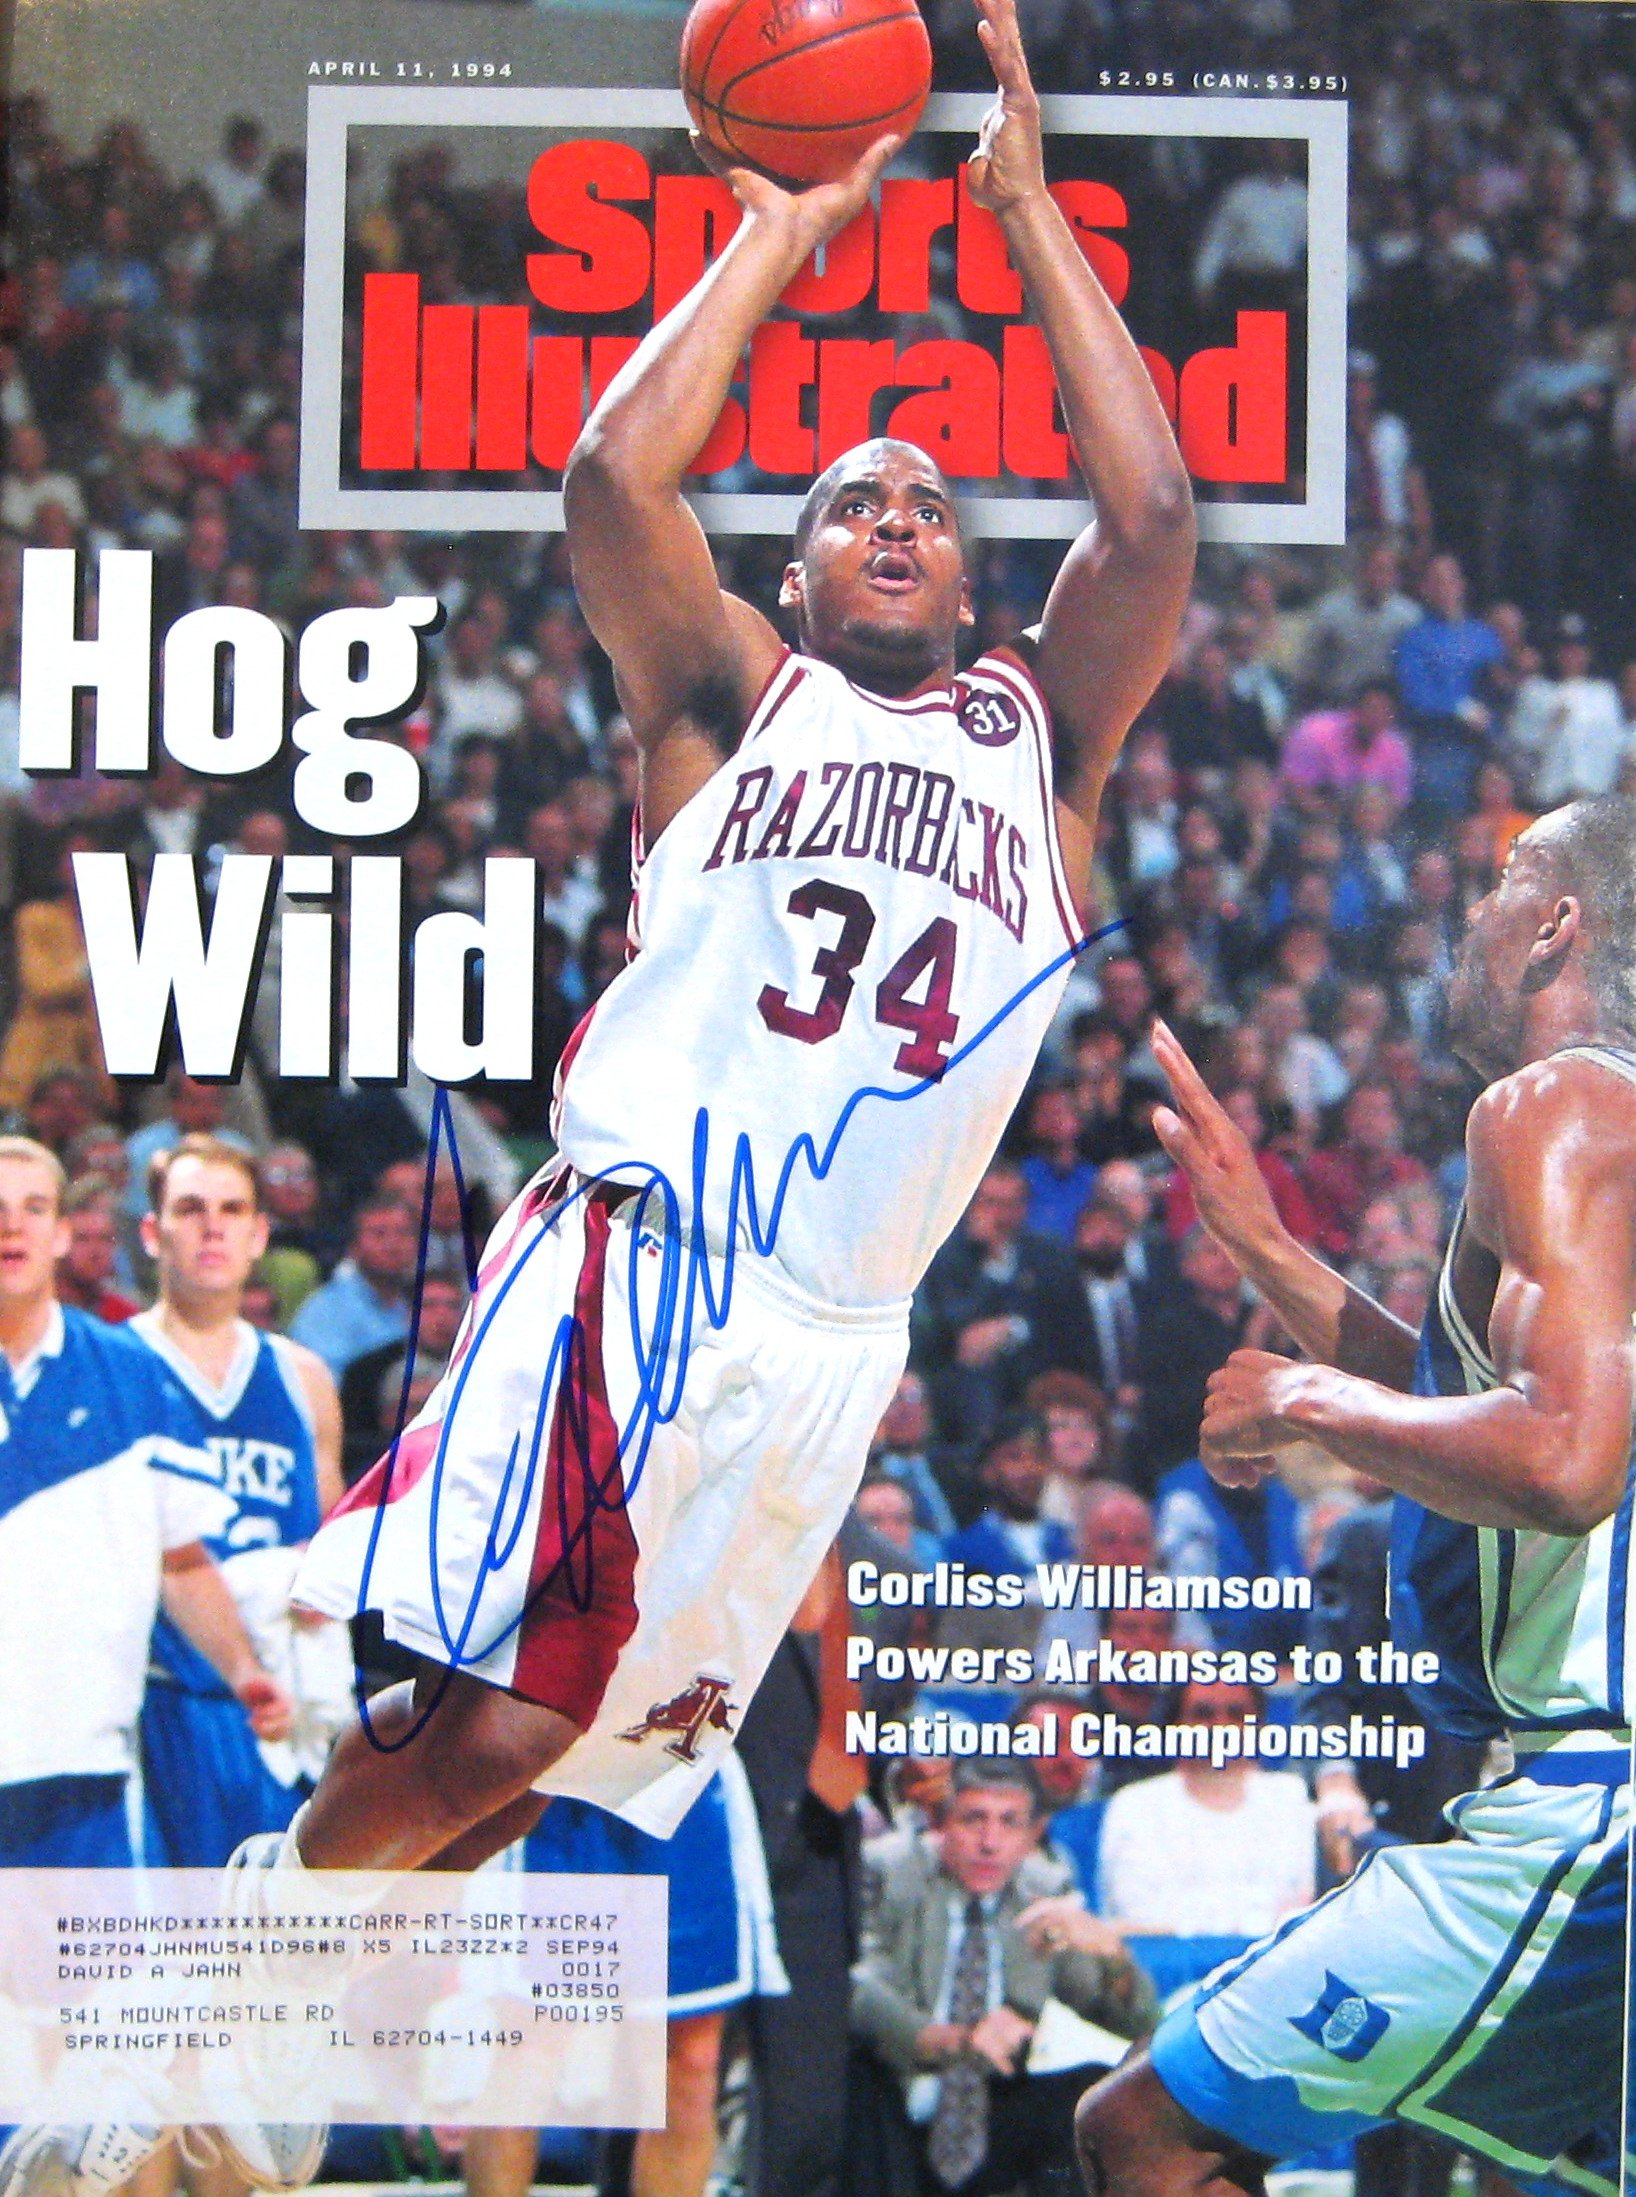 Williamson, Corliss 4/11/94 autographed magazine